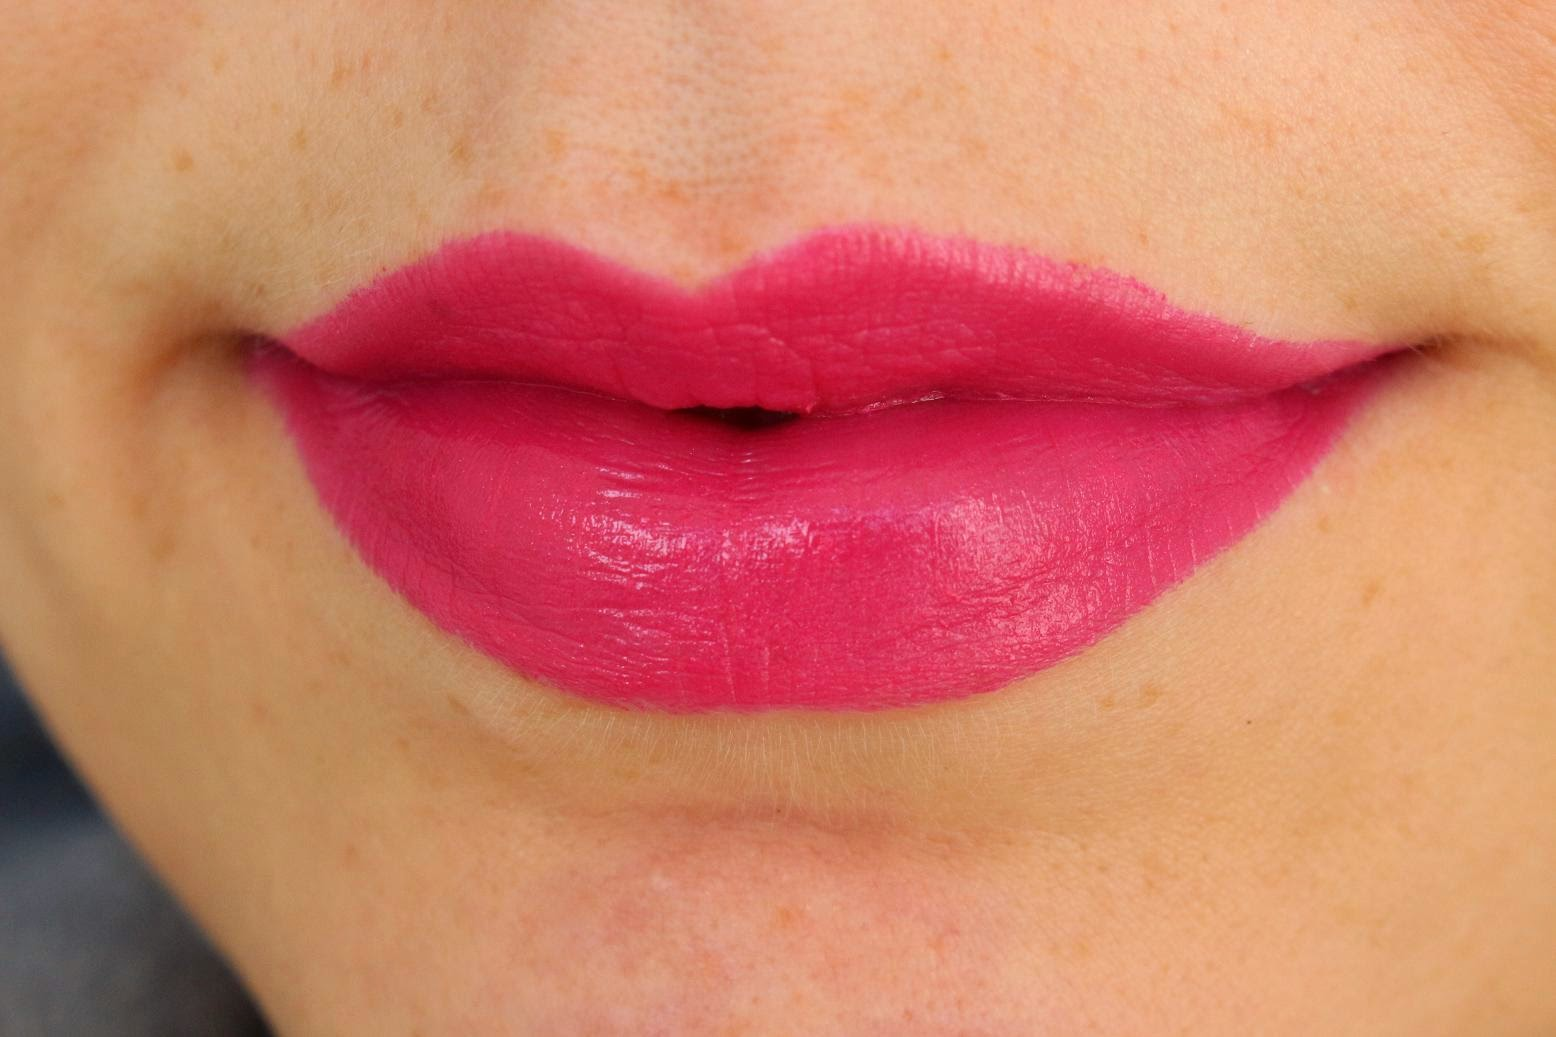 MAC Viva Glam Miley lipstick